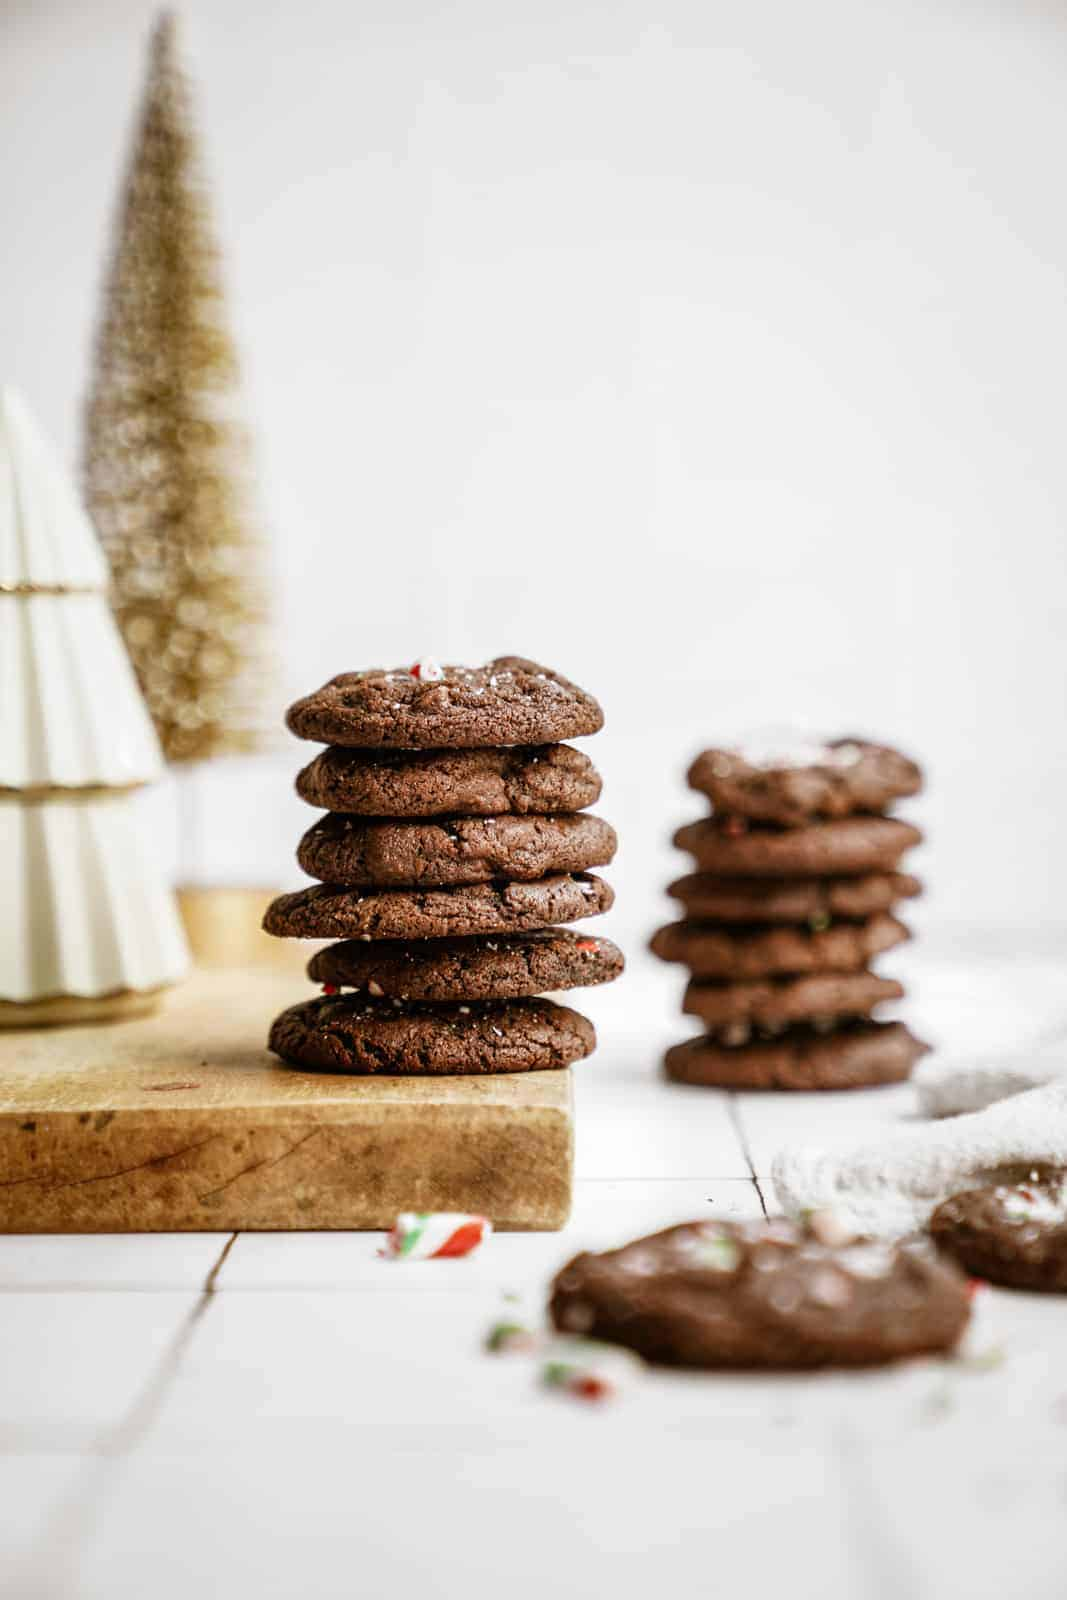 Stacks of Chocolate Peppermint Cookies